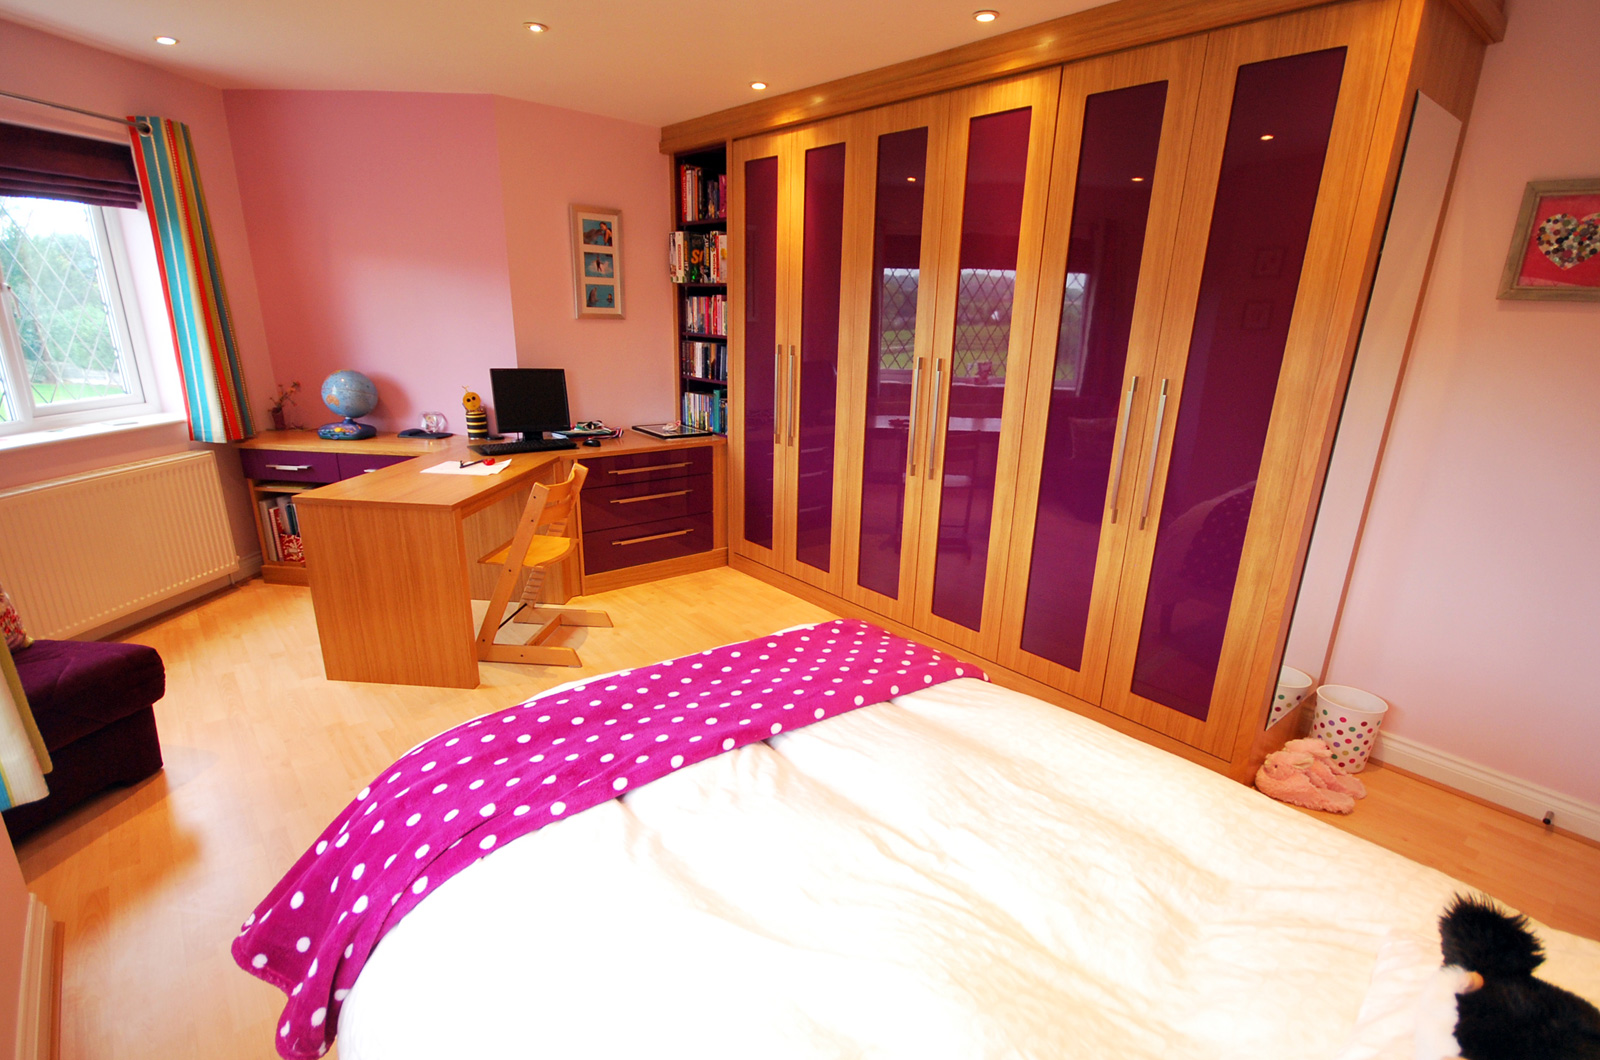 Bespoke kids bedroom furniture in purple high gloss and cherry wood